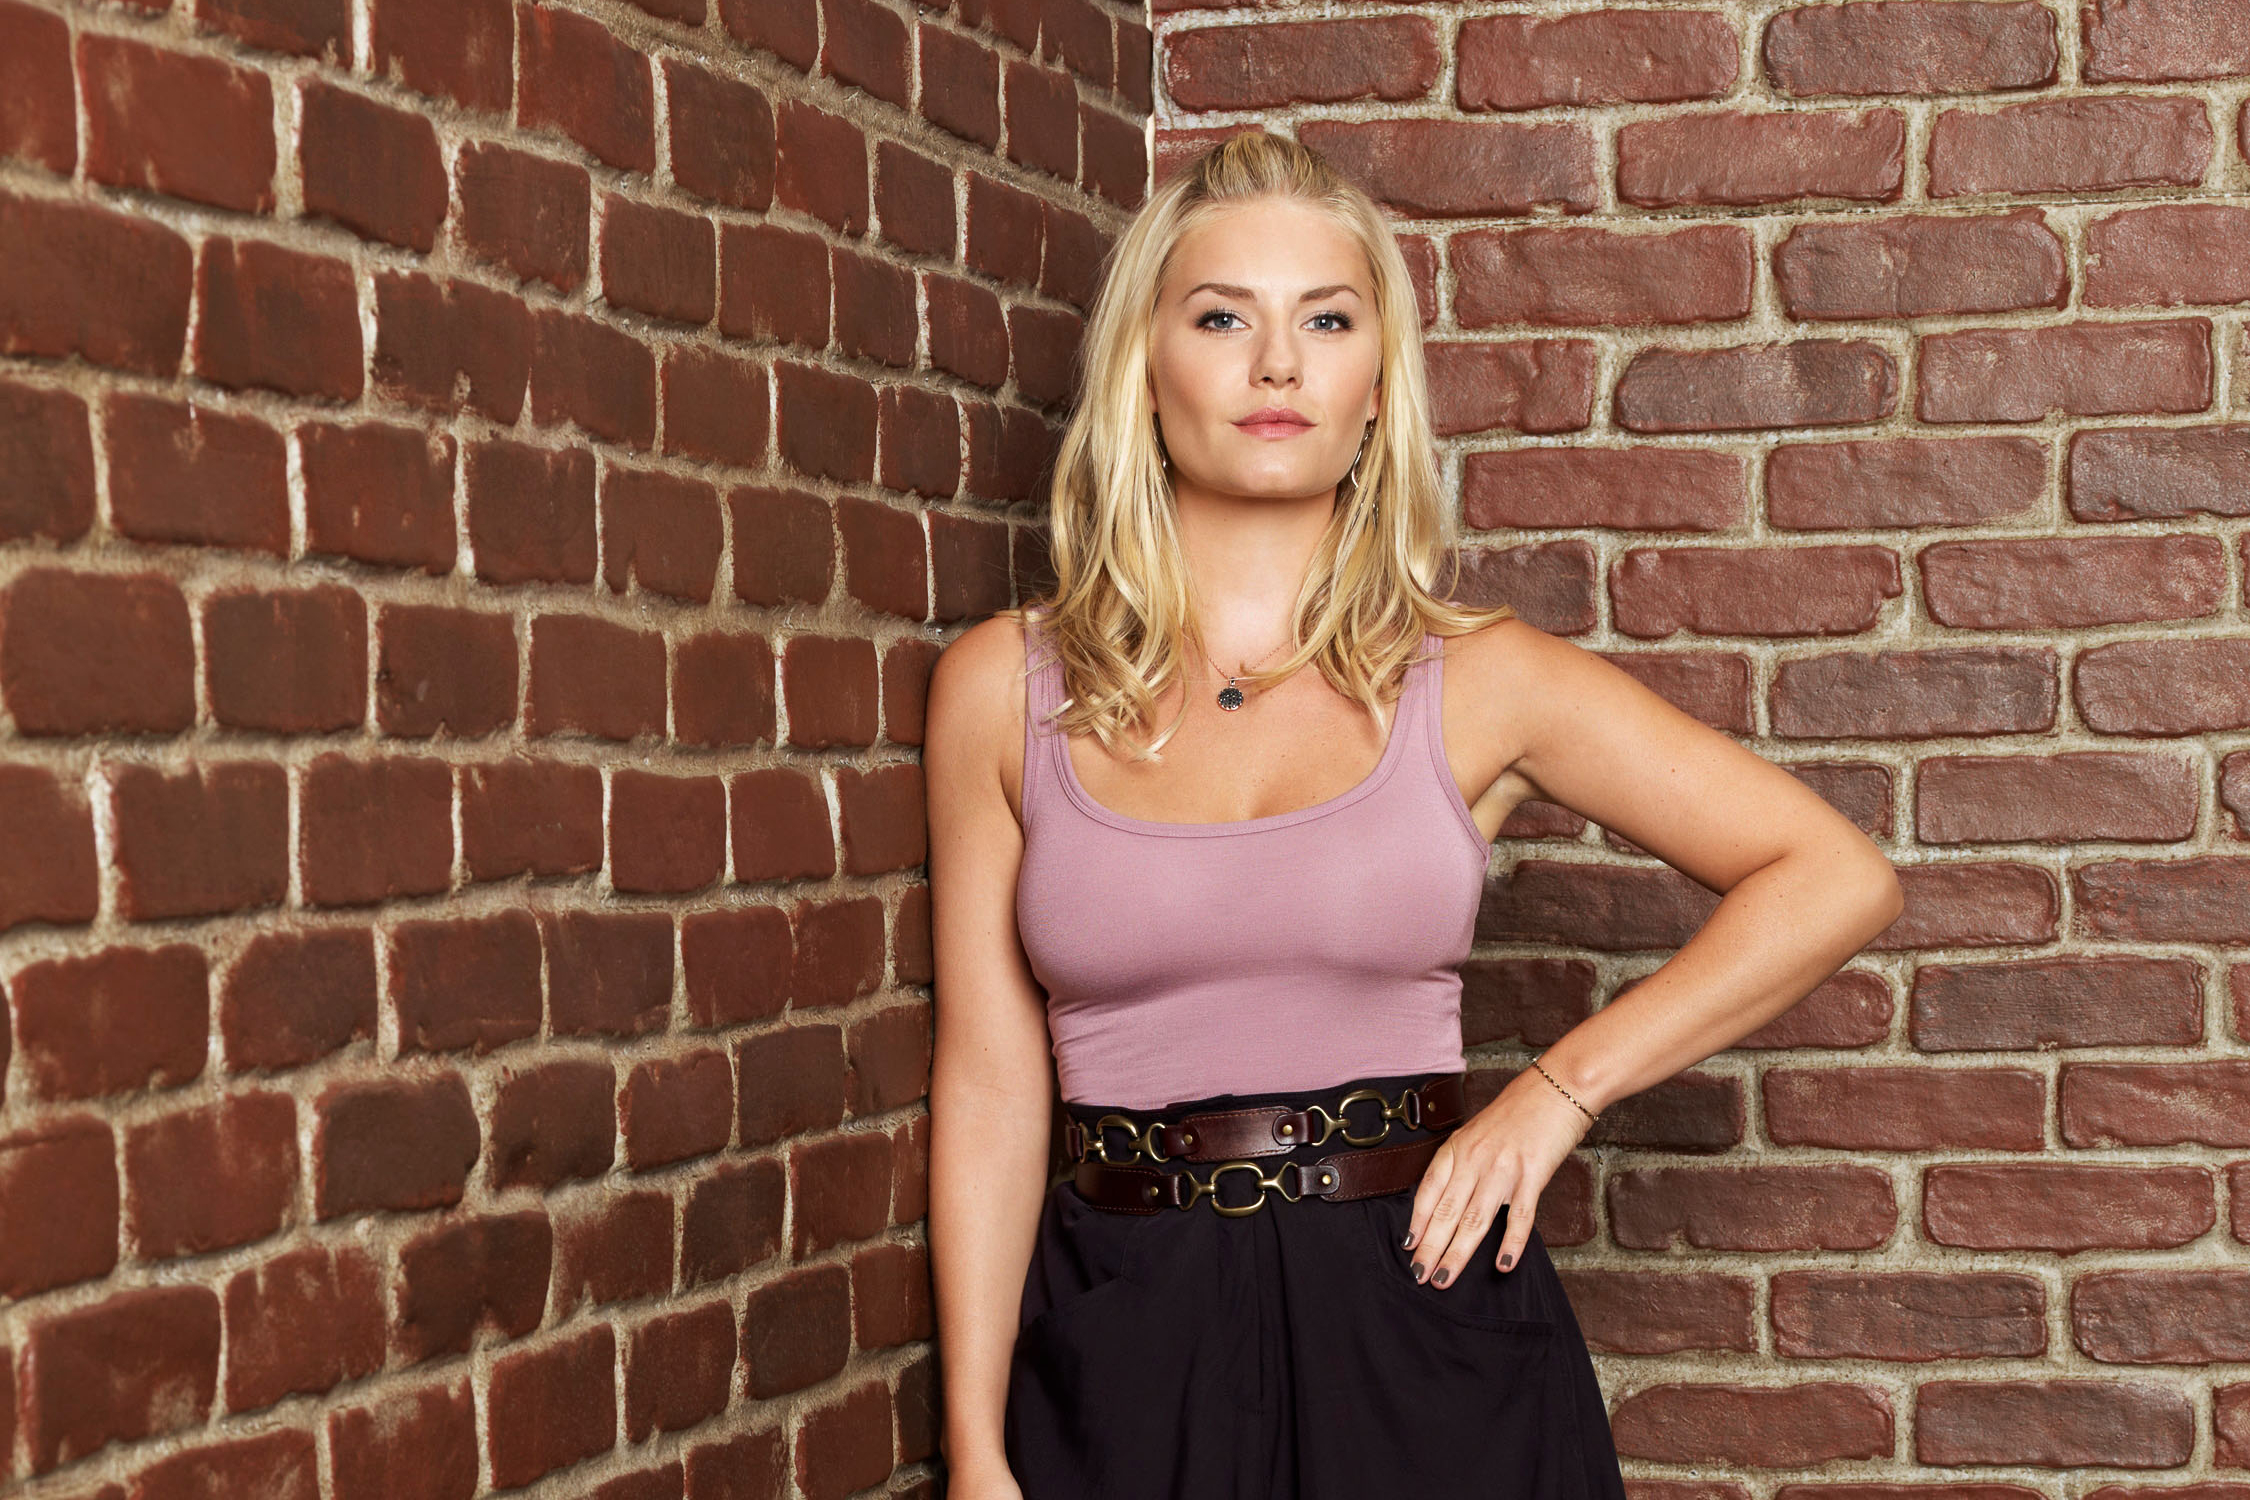 Elisha Cuthbert Hd Wallpapers: Elisha Cuthbert Wallpapers, Pictures, Images